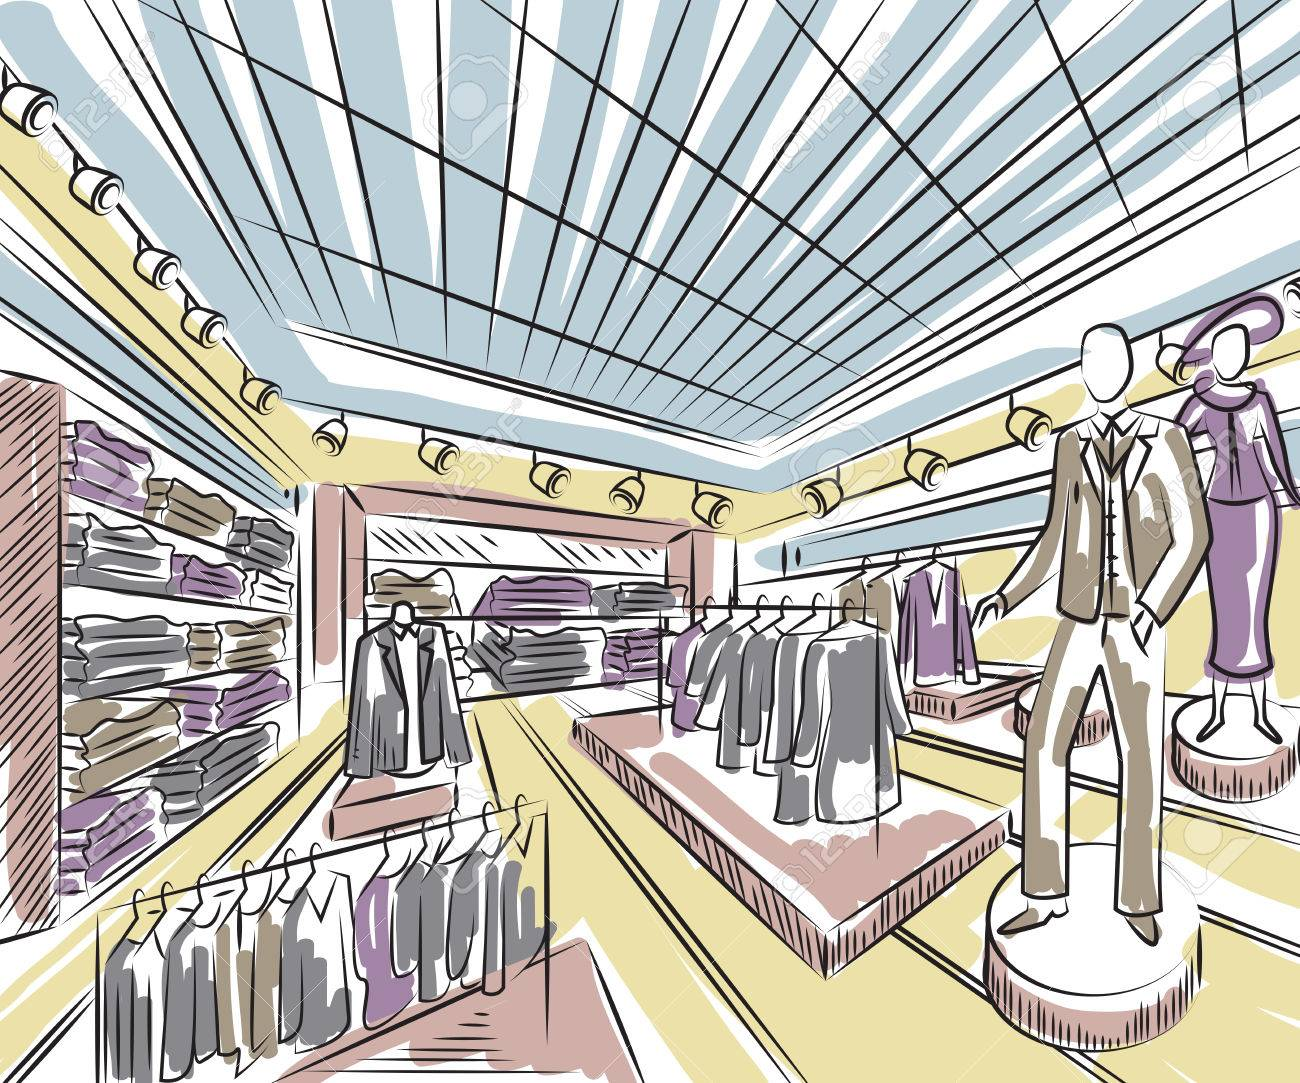 Fashion Store Interior Design In Sketch Style Vintage Hand Drawn Vector Illustration Stock